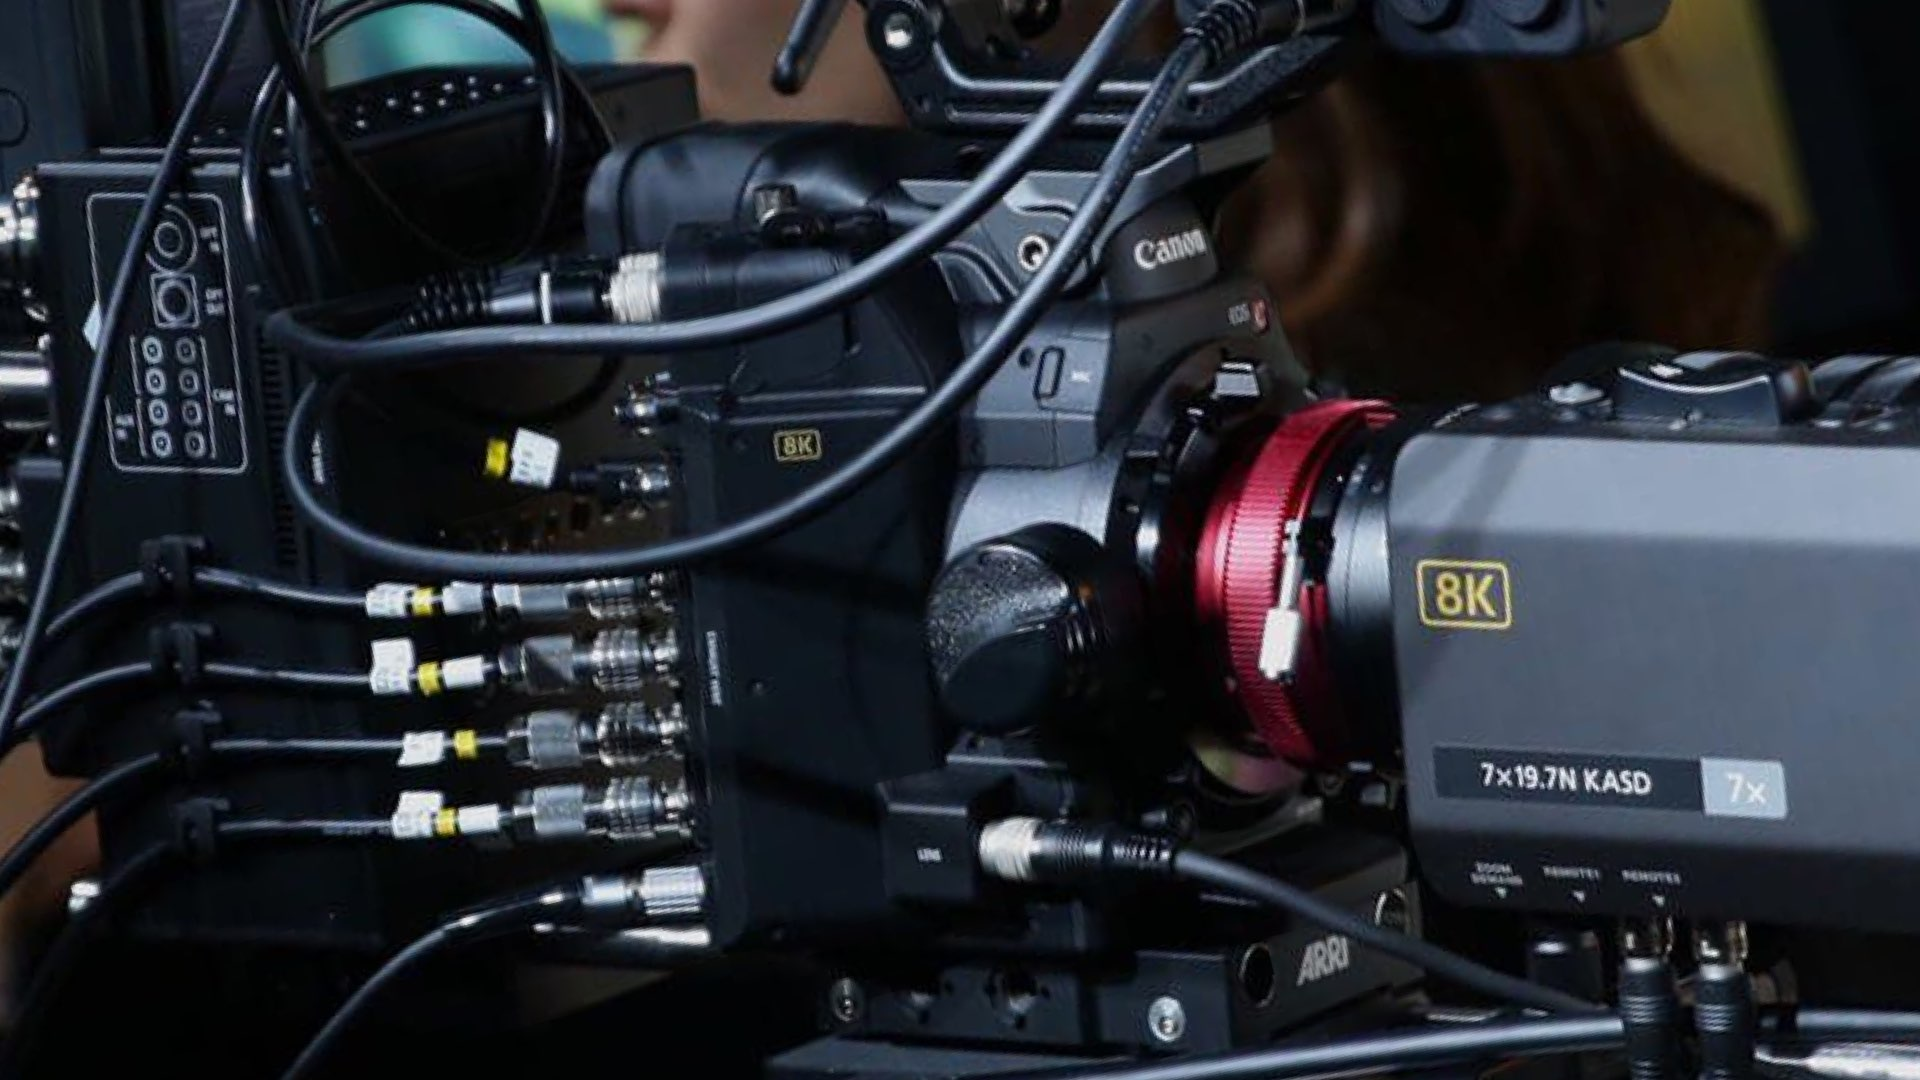 Canon C300 Mark III 8K Full Frame: The NAB Show 2019's Hypothesis